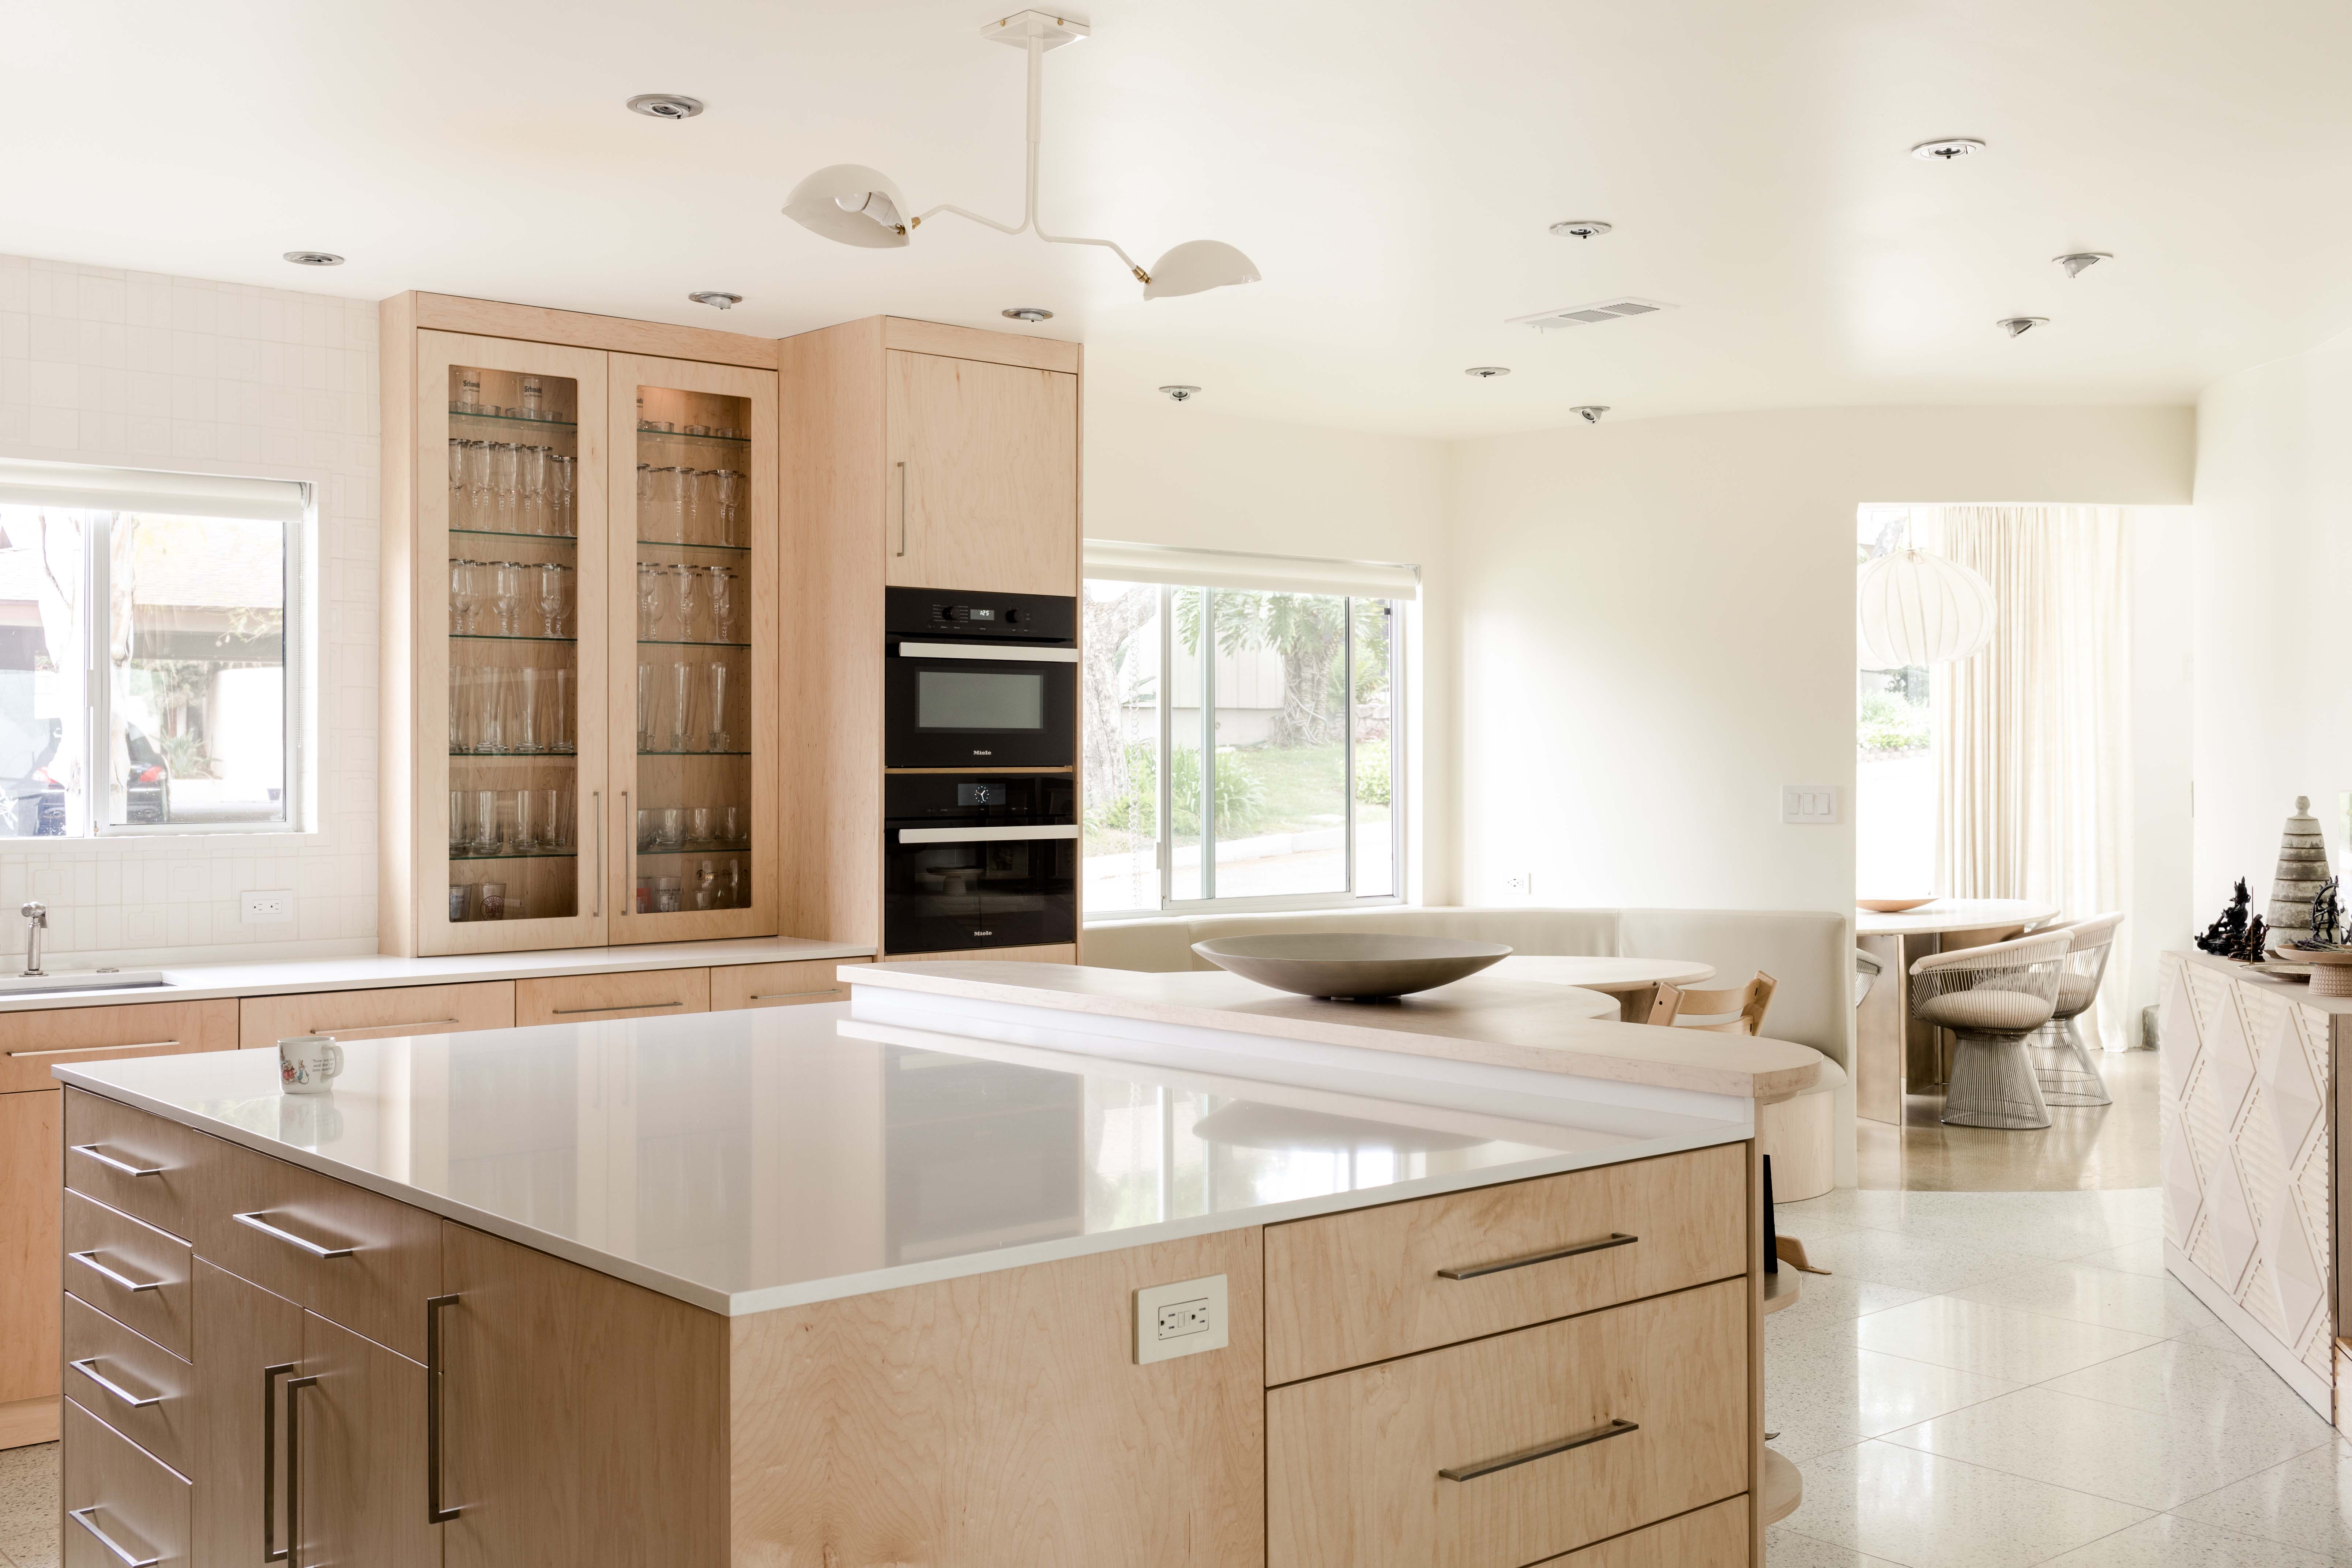 How To Remove Superglue From Granite Countertop